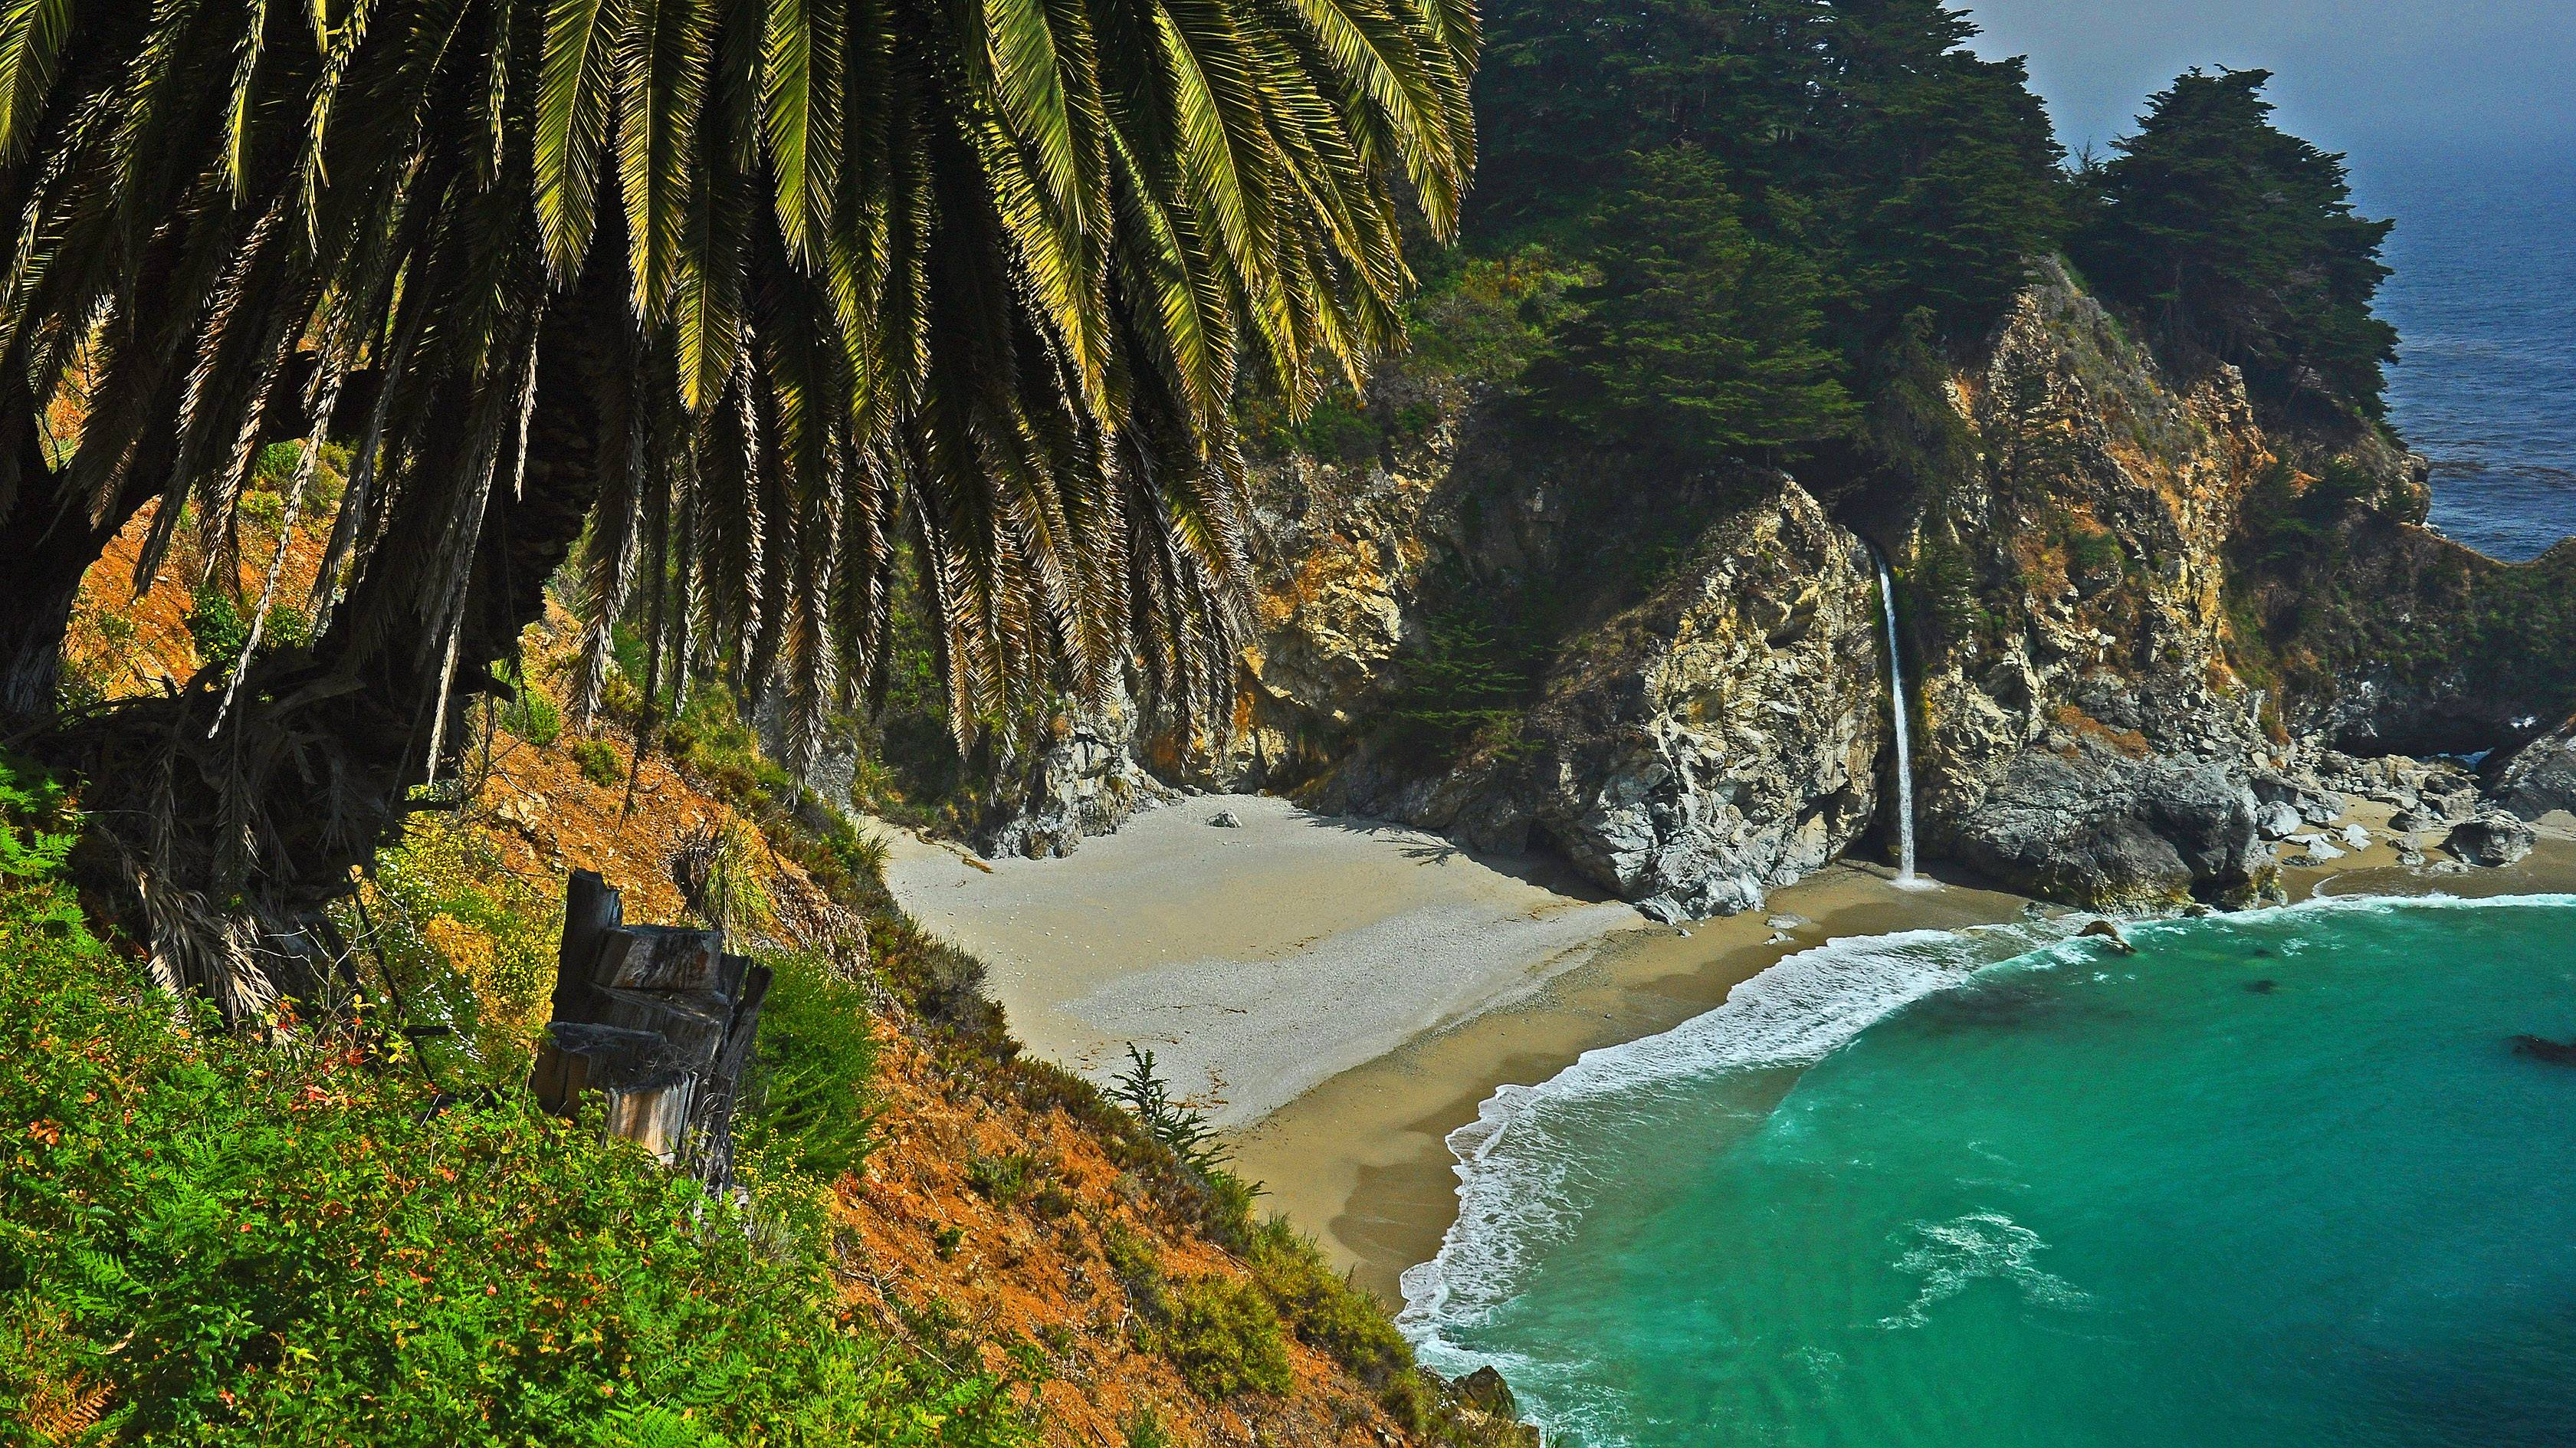 As we continue to endure this harsh midwest winter, my mind wanders back to our summer California trip to the Big Sur coast. Pictured here is McWay Falls in Julia Pfeiffer Burns State Park as it plunges into the Pacific Ocean.